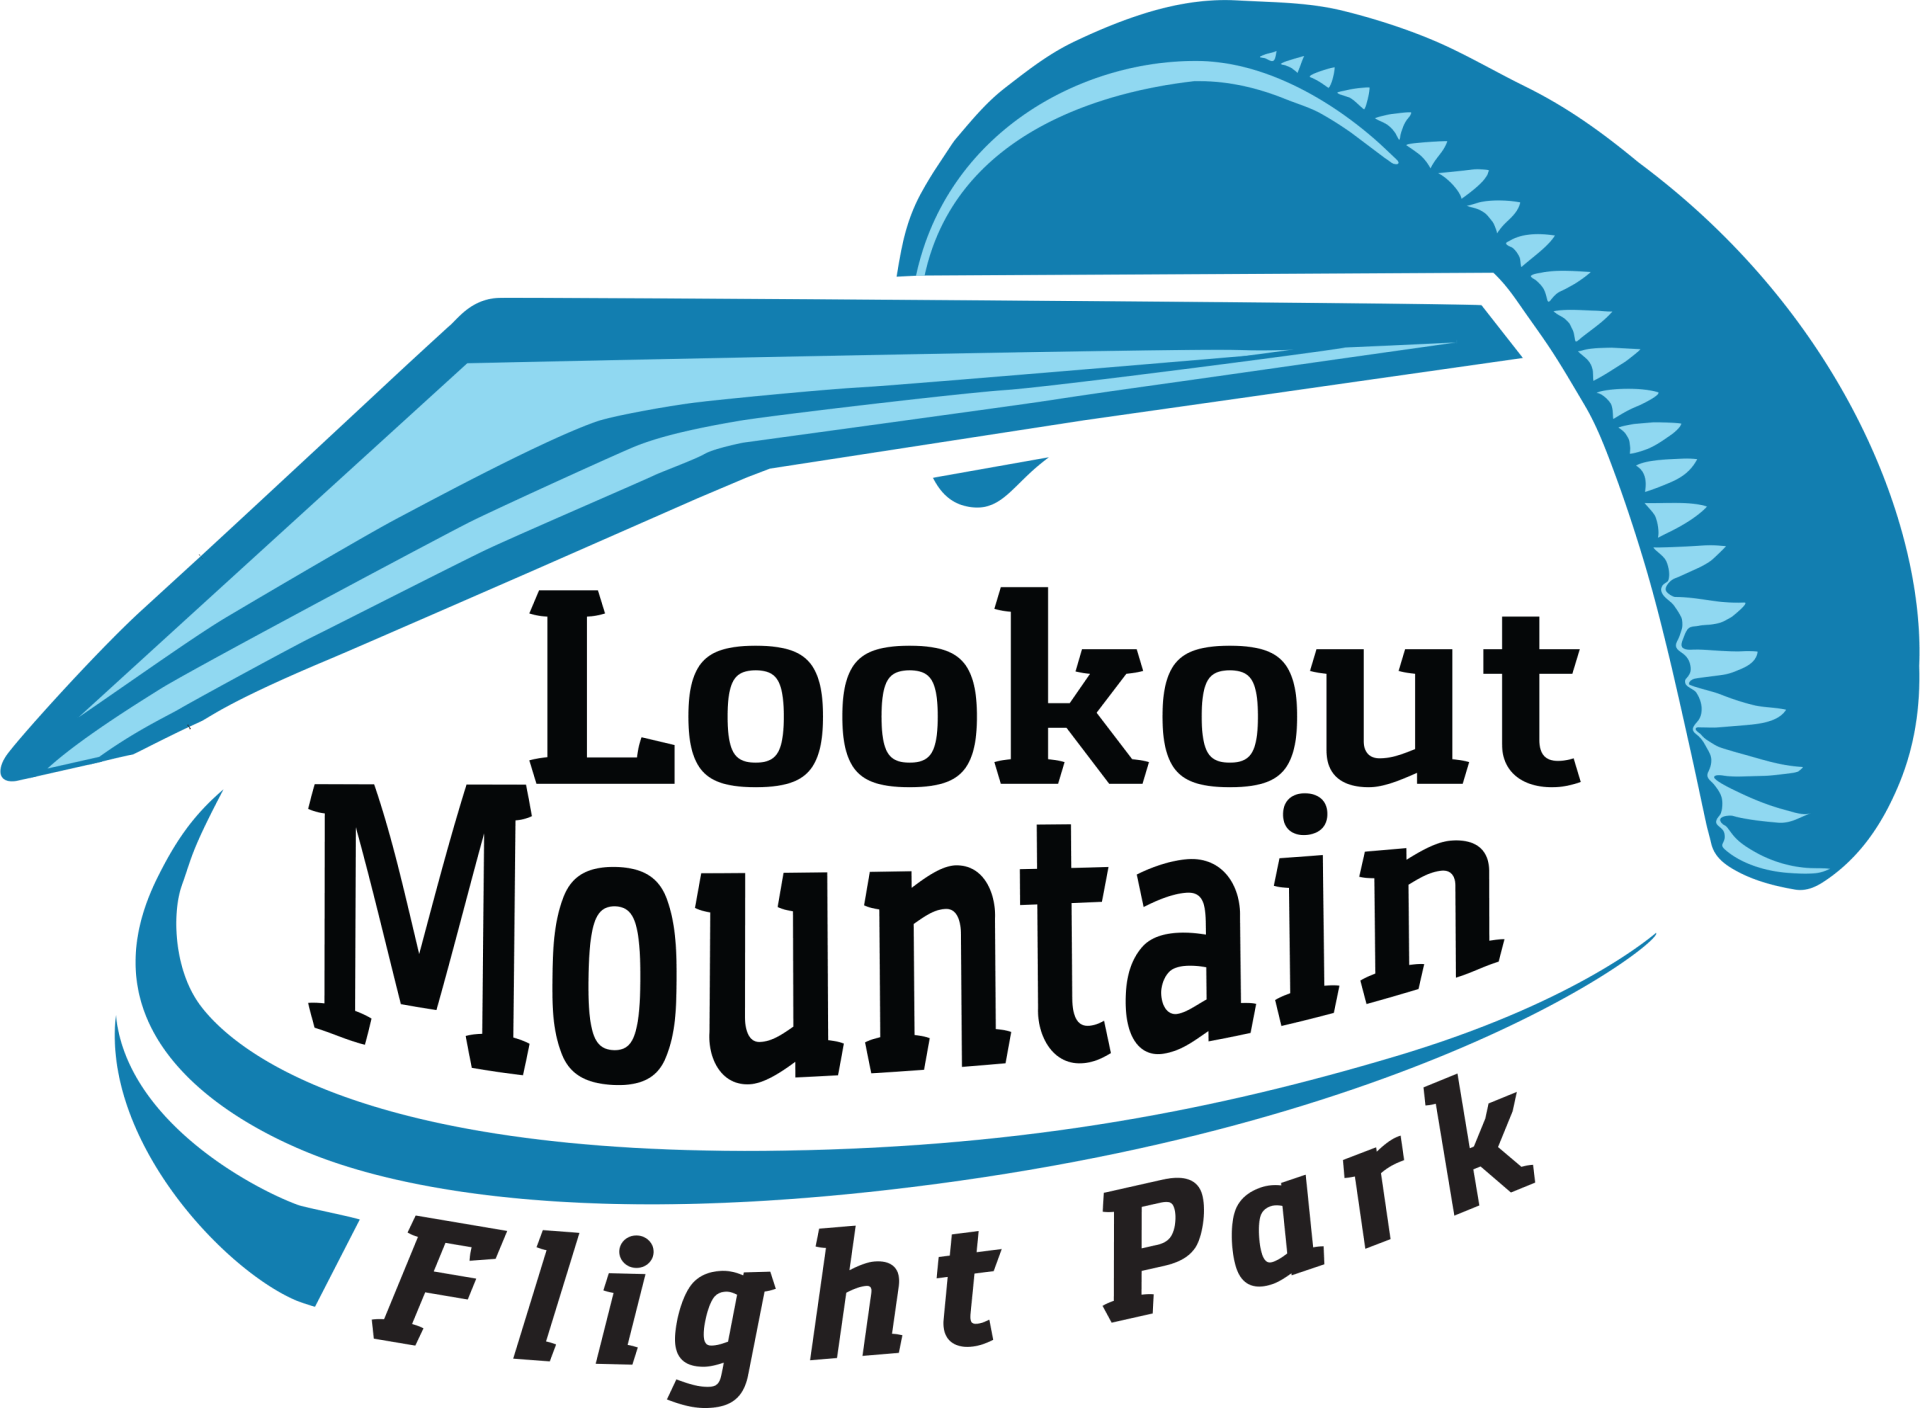 Lookout Mountain Flight Park | Hang Gliding and Paragliding